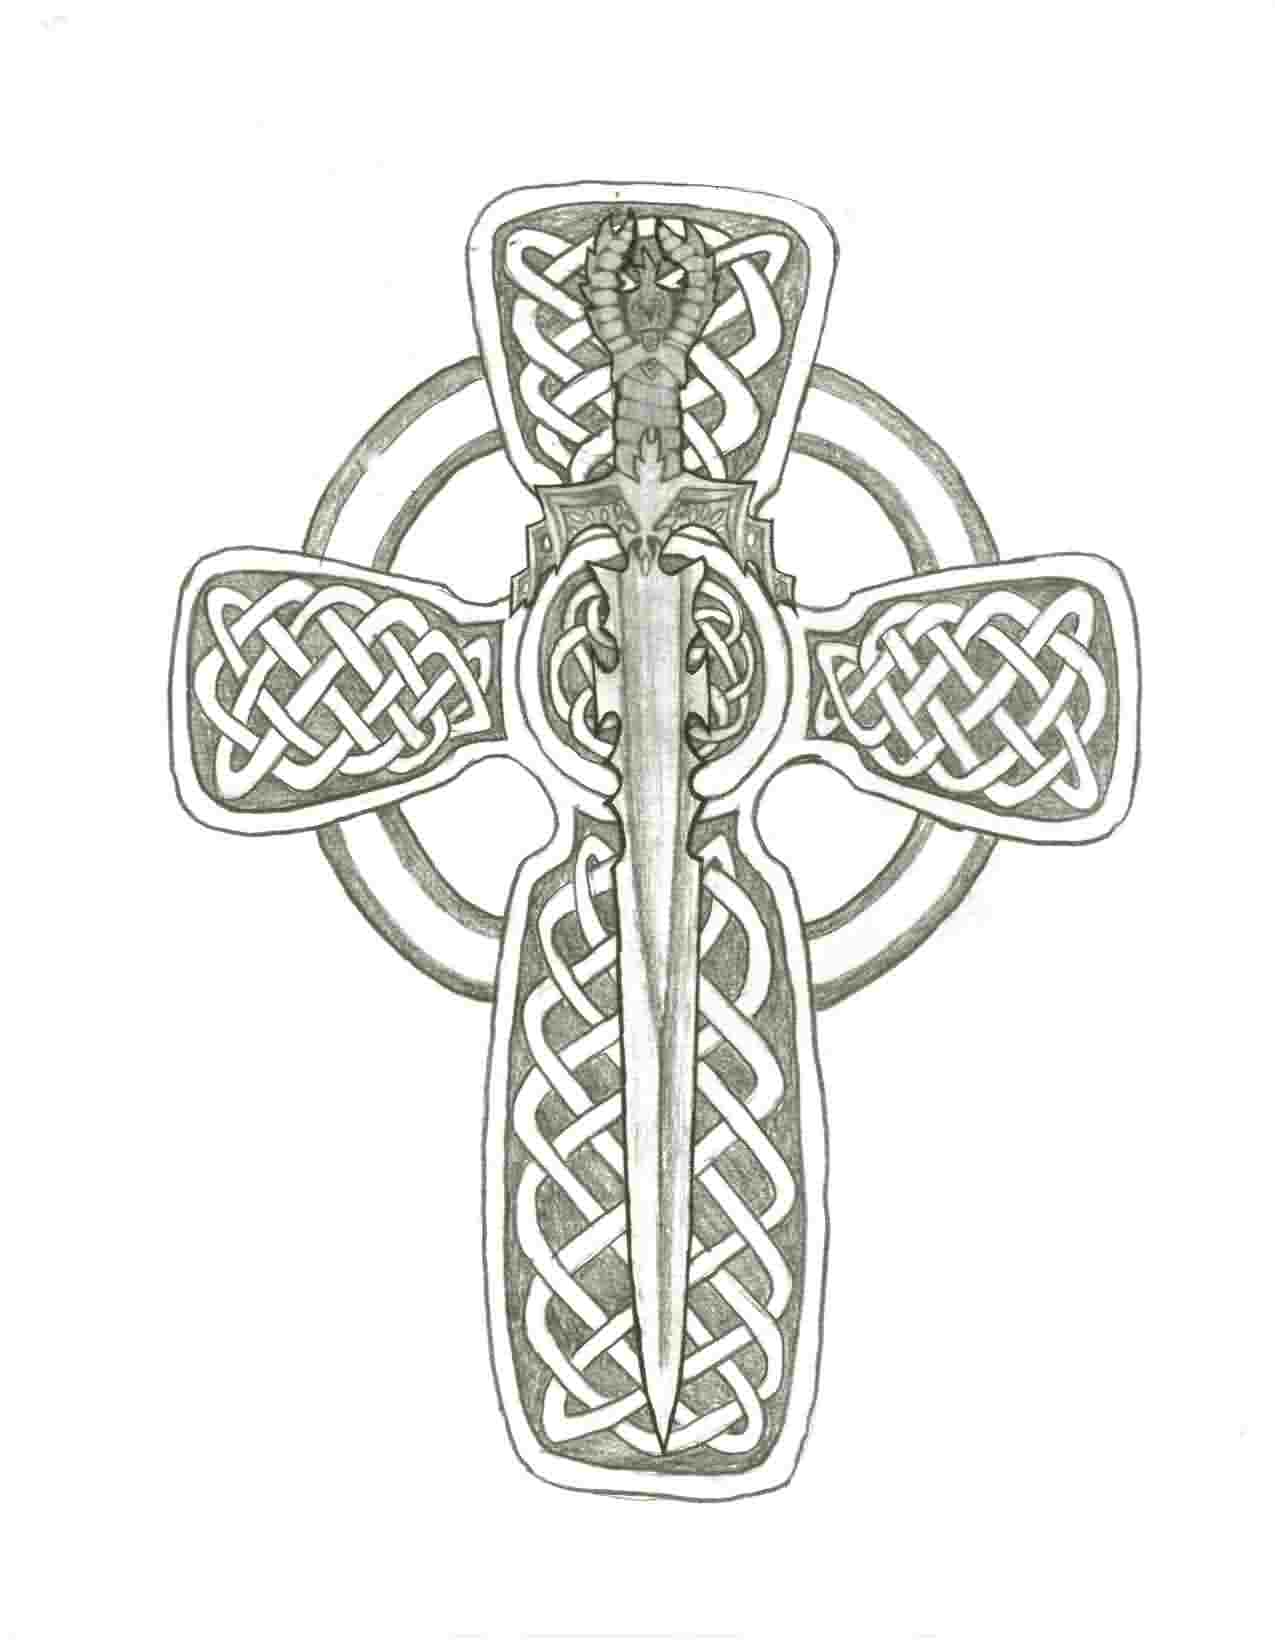 Sword In The Middle Of Cross Tattoo Sketch